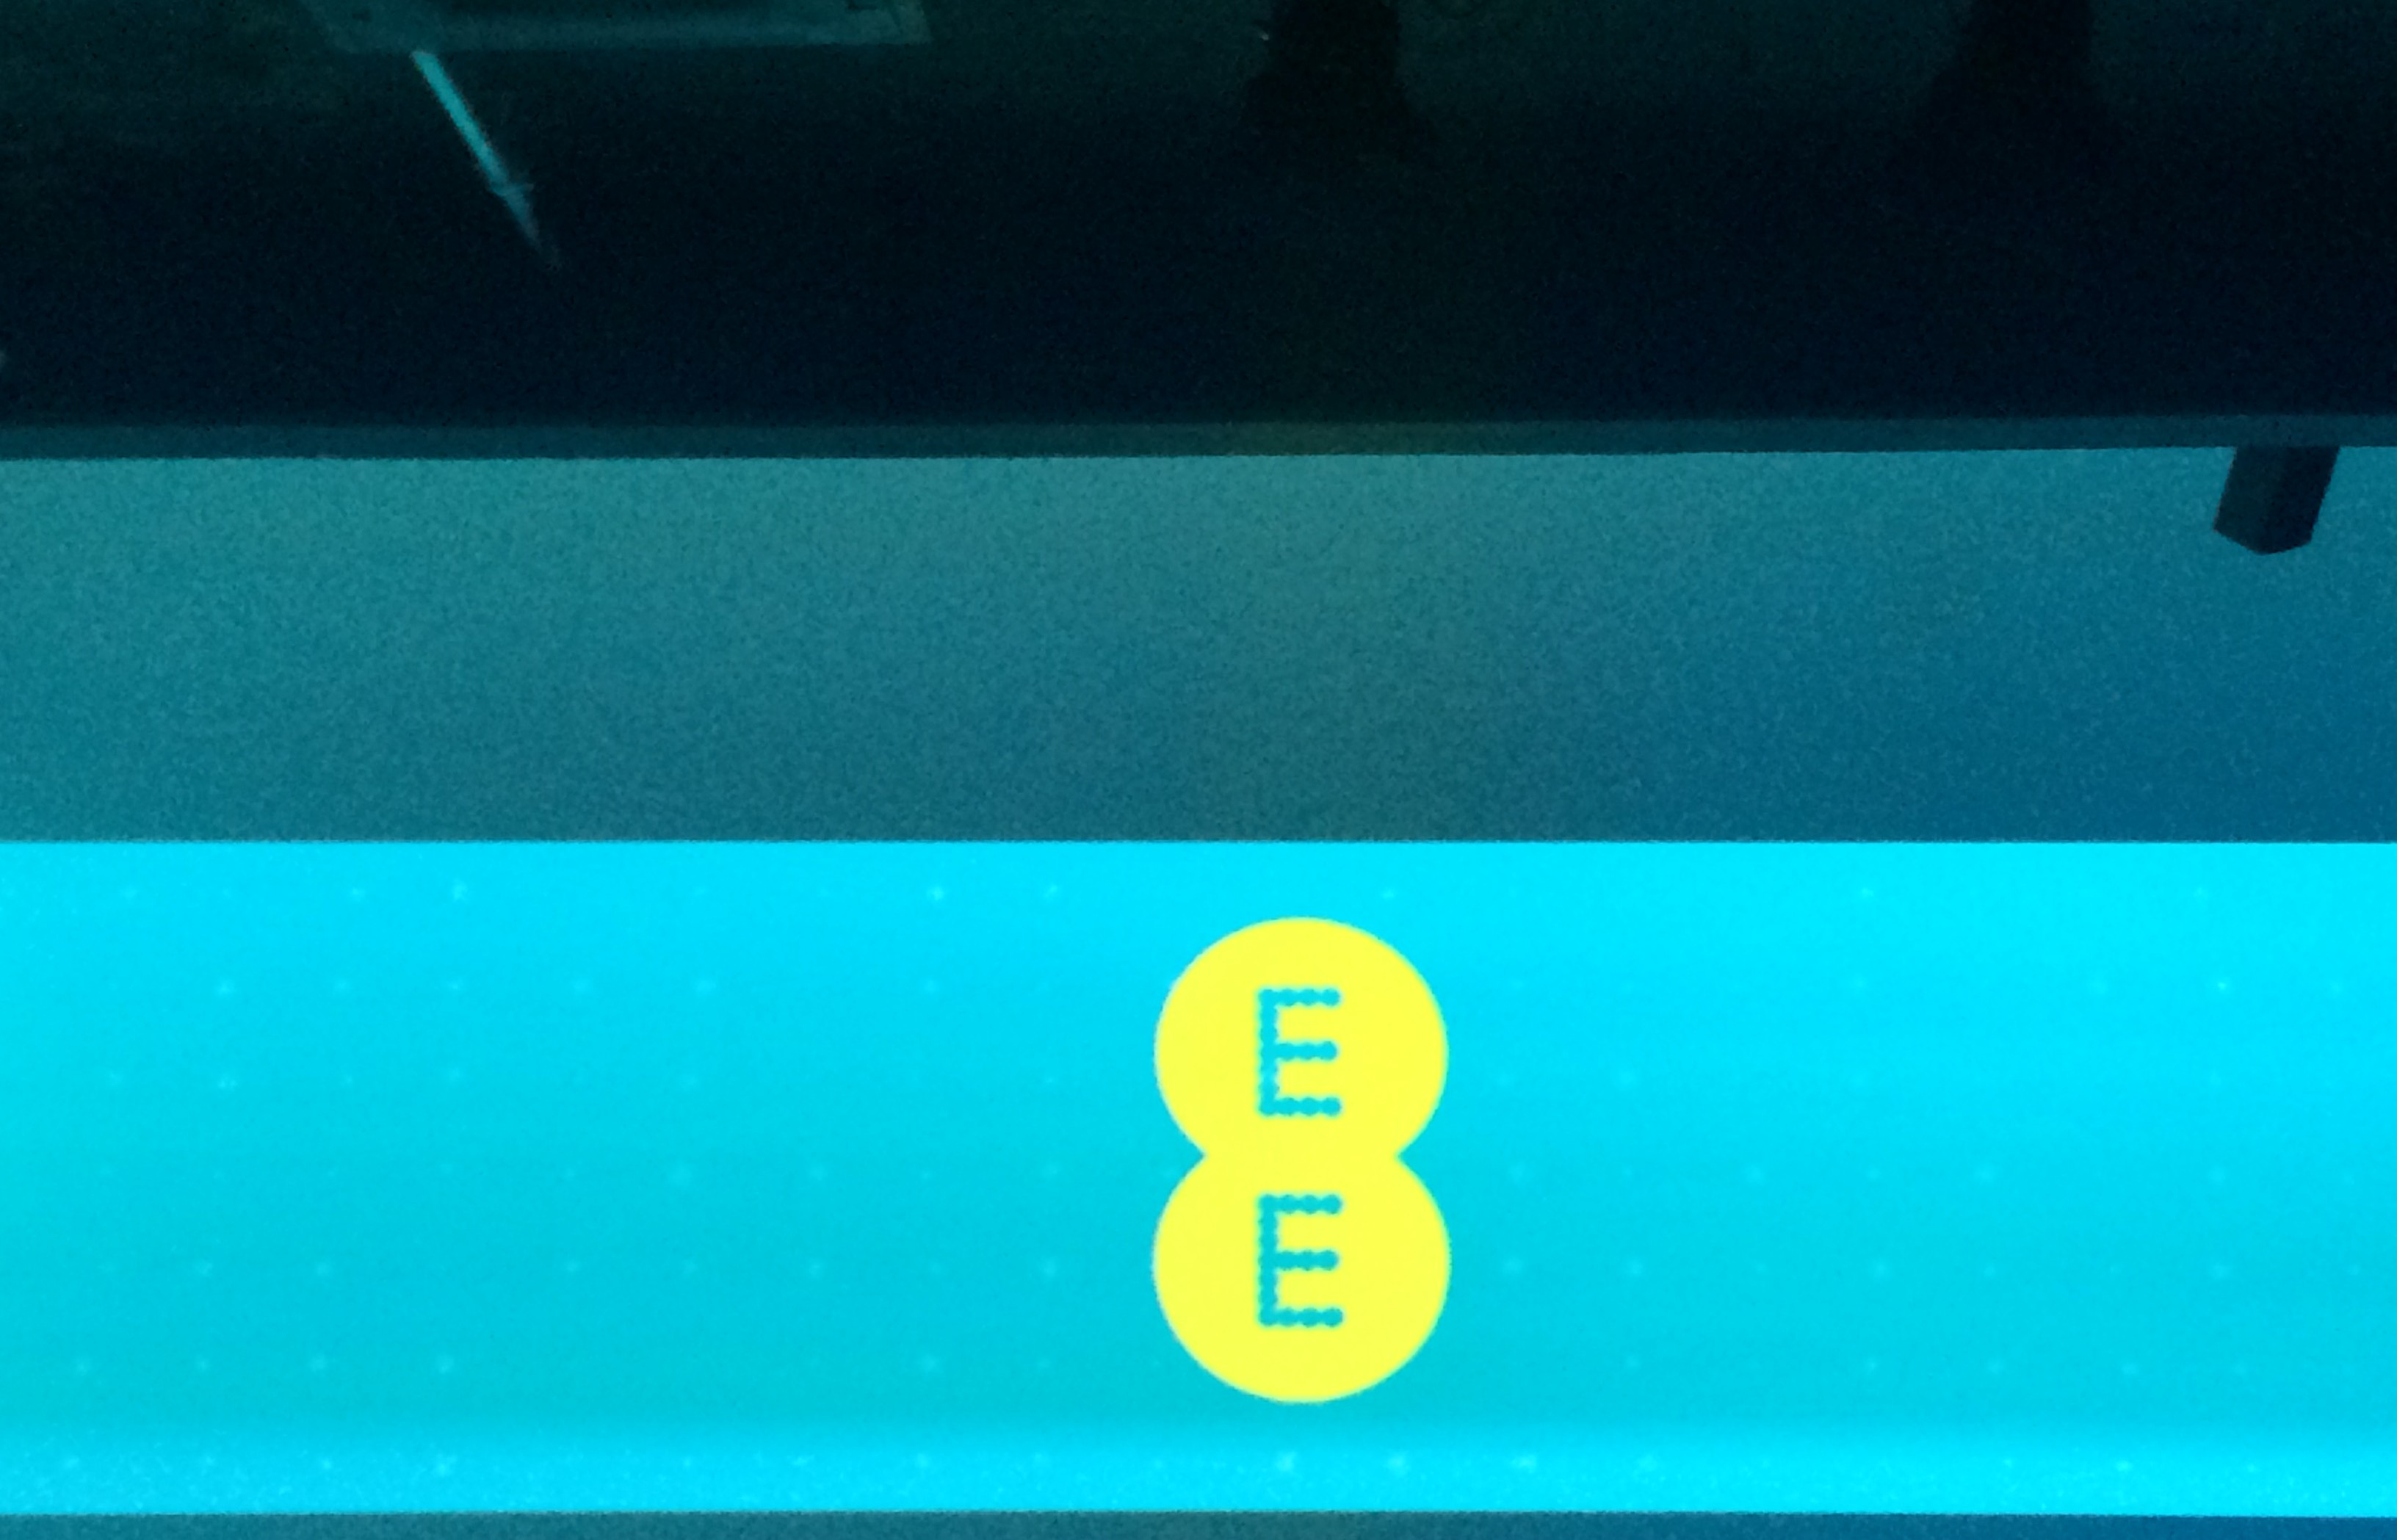 EE Tackles More Not-Spots To Extend 4G Coverage | Silicon UK